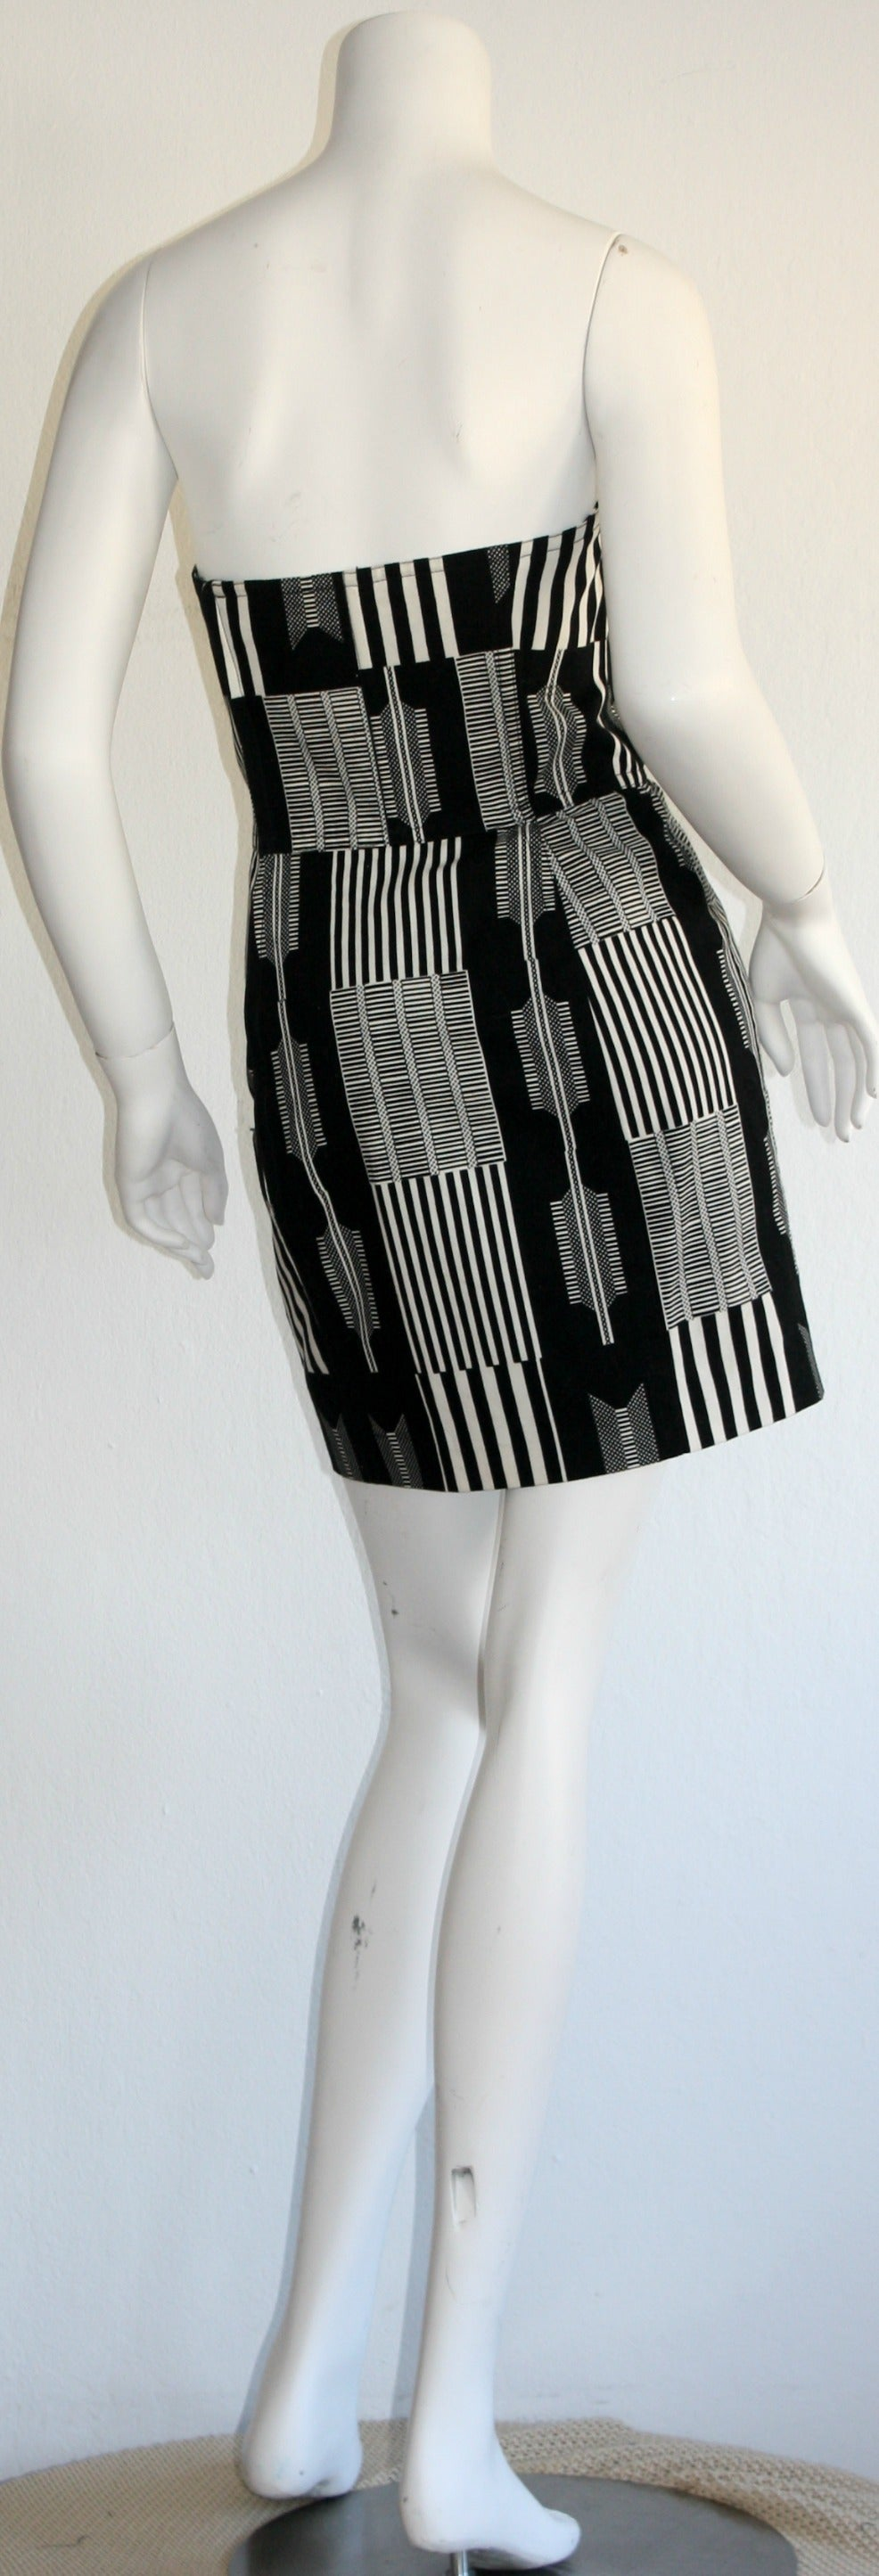 "Women's Vintage Patrick Kelly "" Barcode "" Black & White Avant Garde Mini Dress For Sale"